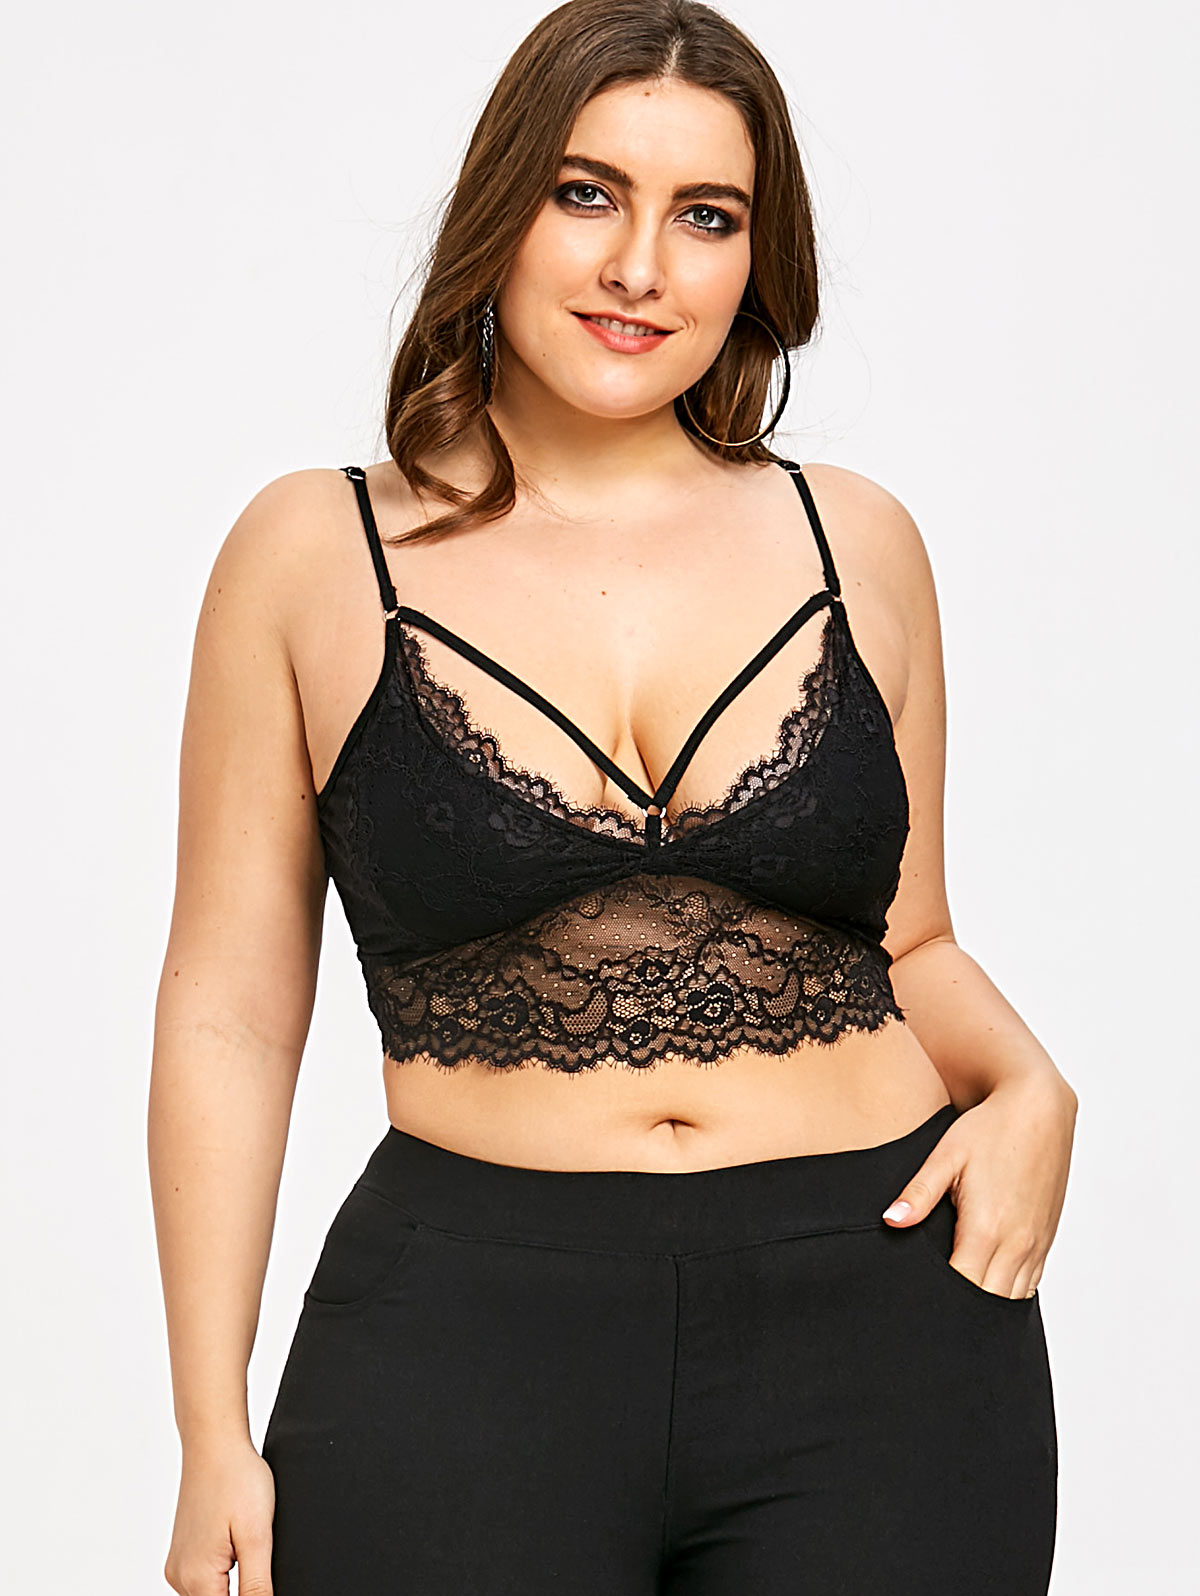 ab0268cc2d Gamiss Plus Size 5XL Black Lace Trim Strappy Crop Top Camisole Sexy  Bralette Scalloped Edge Sheer Camisole Women Summer Top Cami